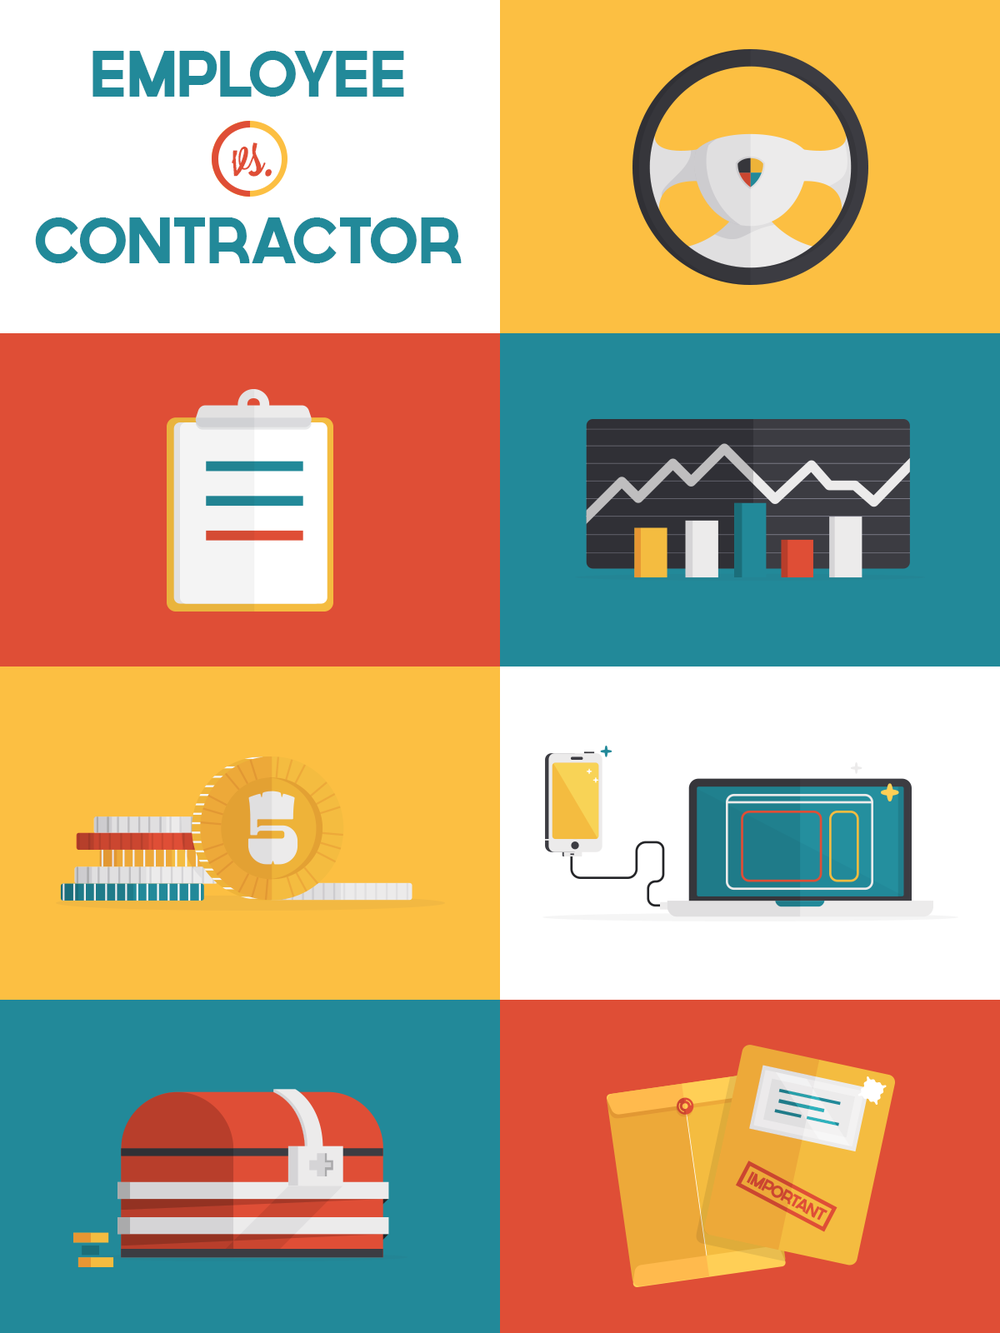 Employee vs contractor icon illustrations